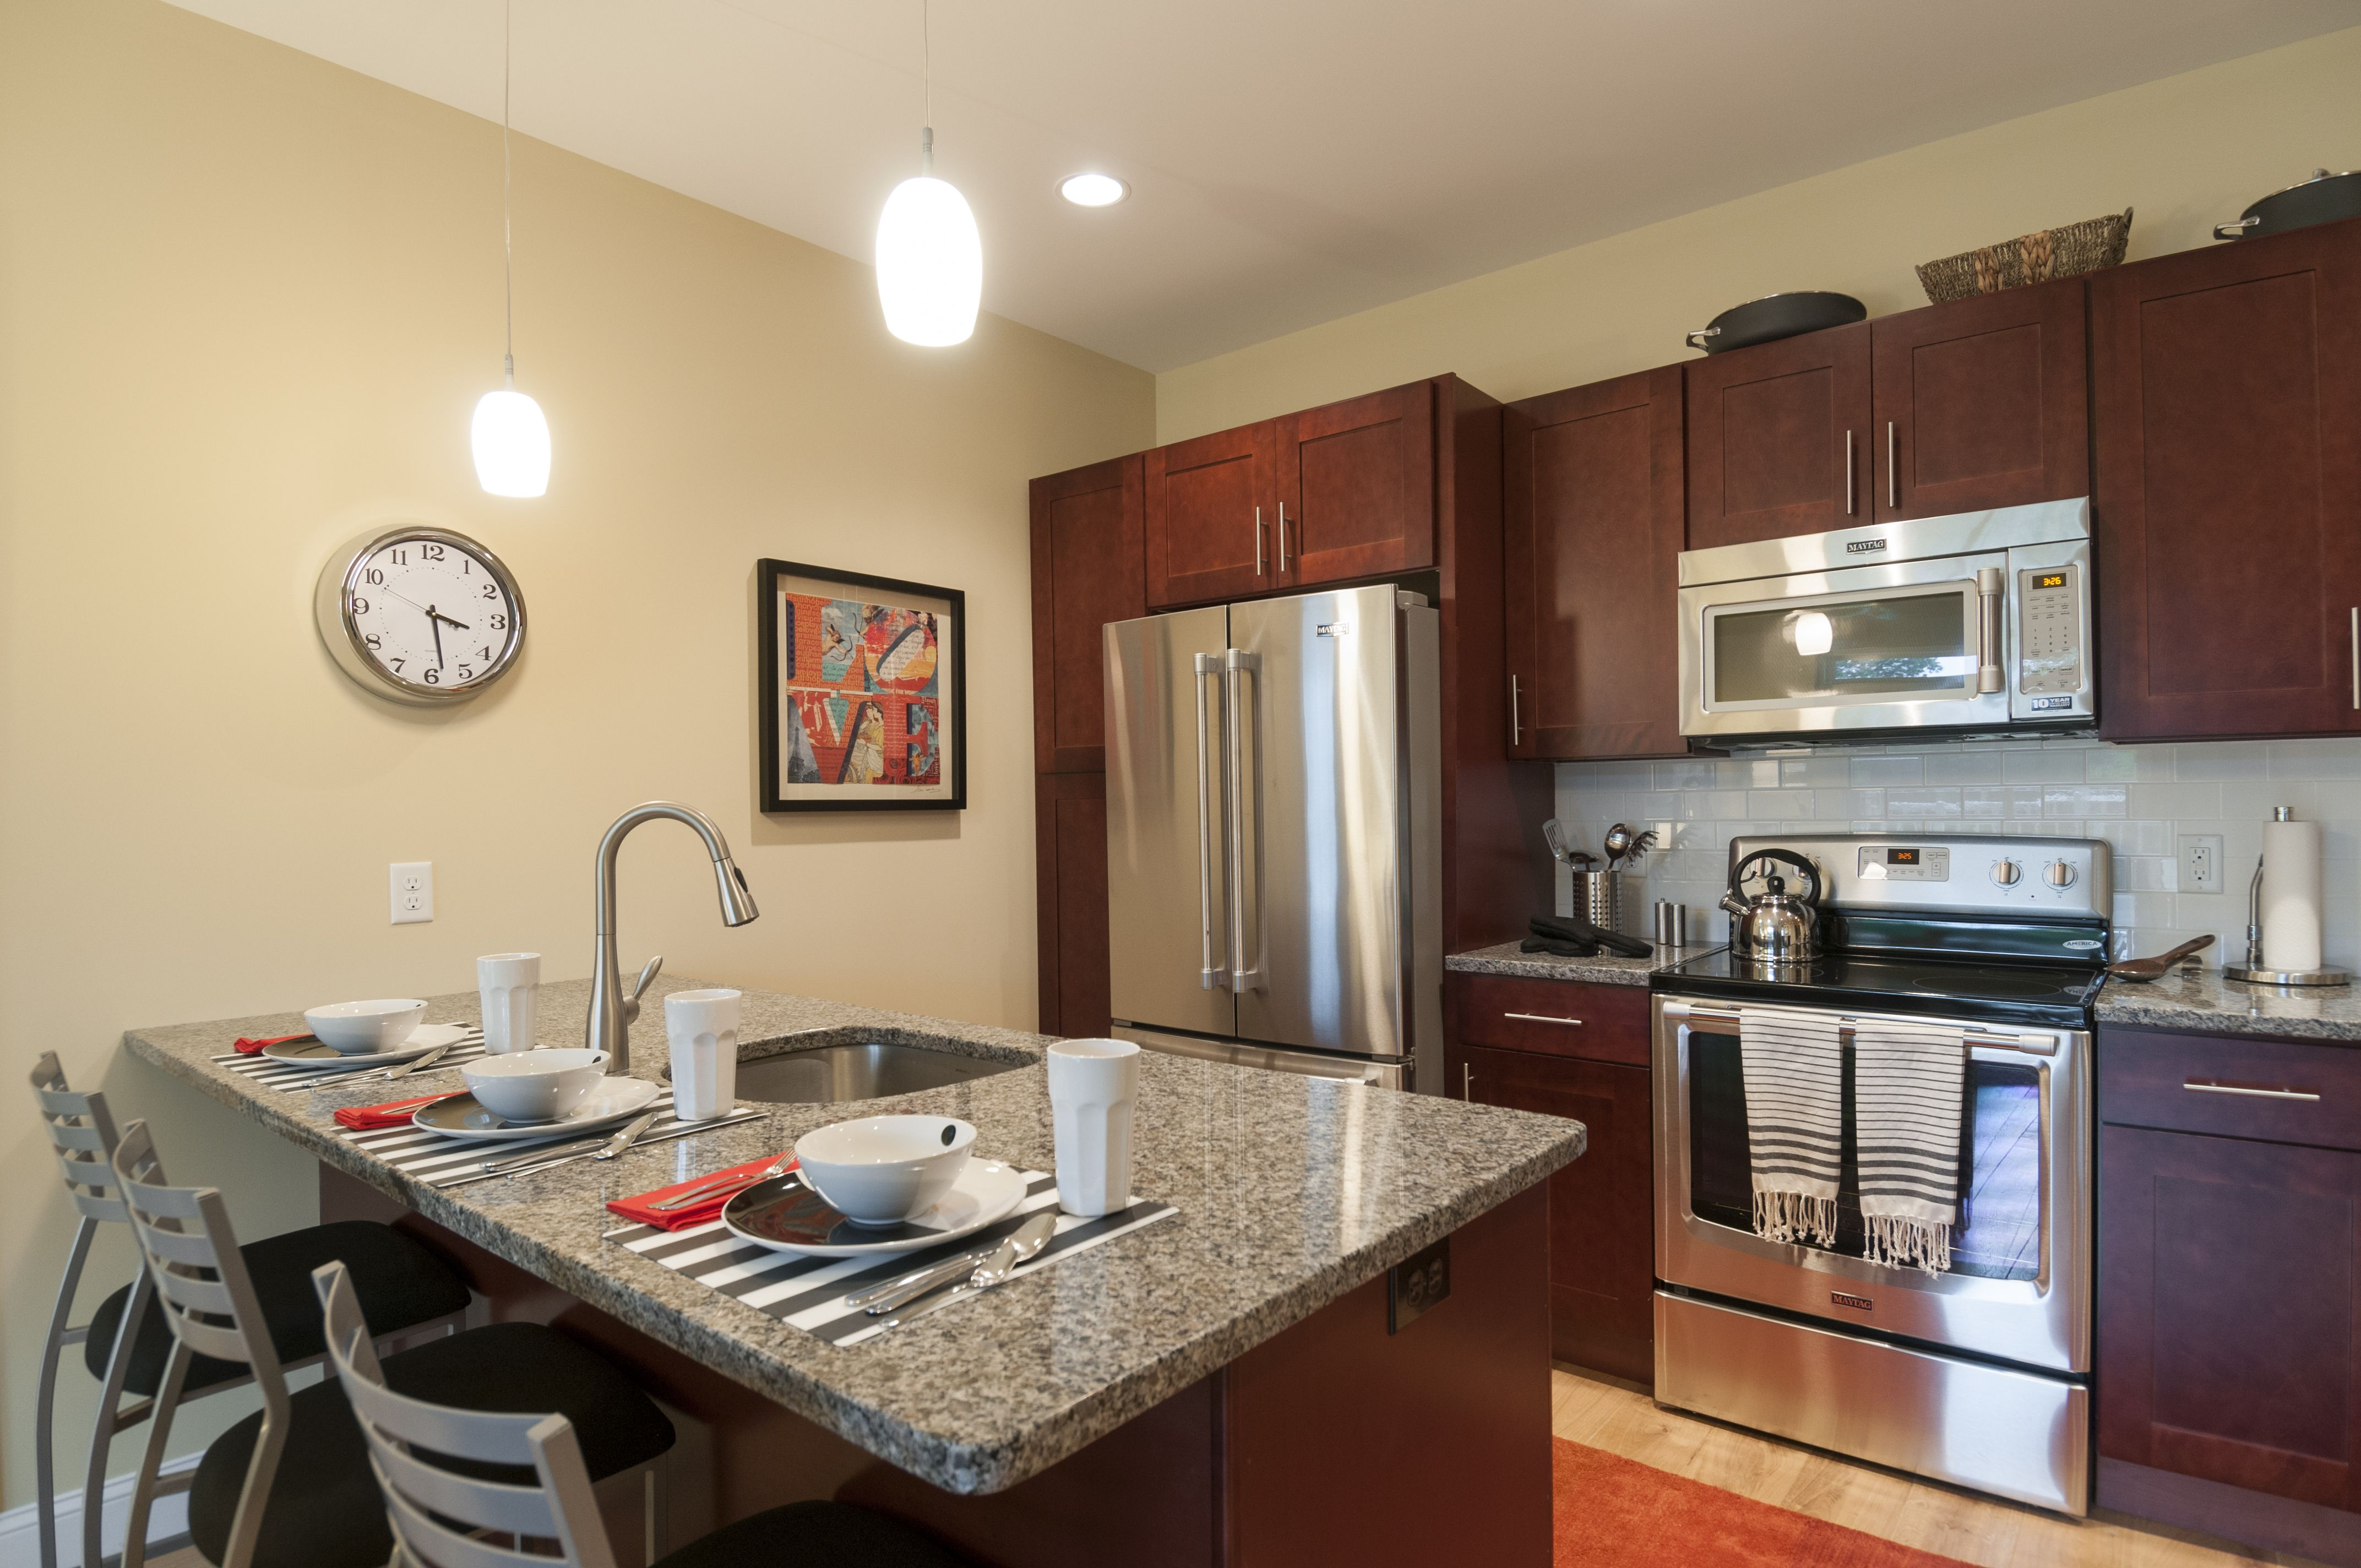 This unique and open kitchen can be yours at the